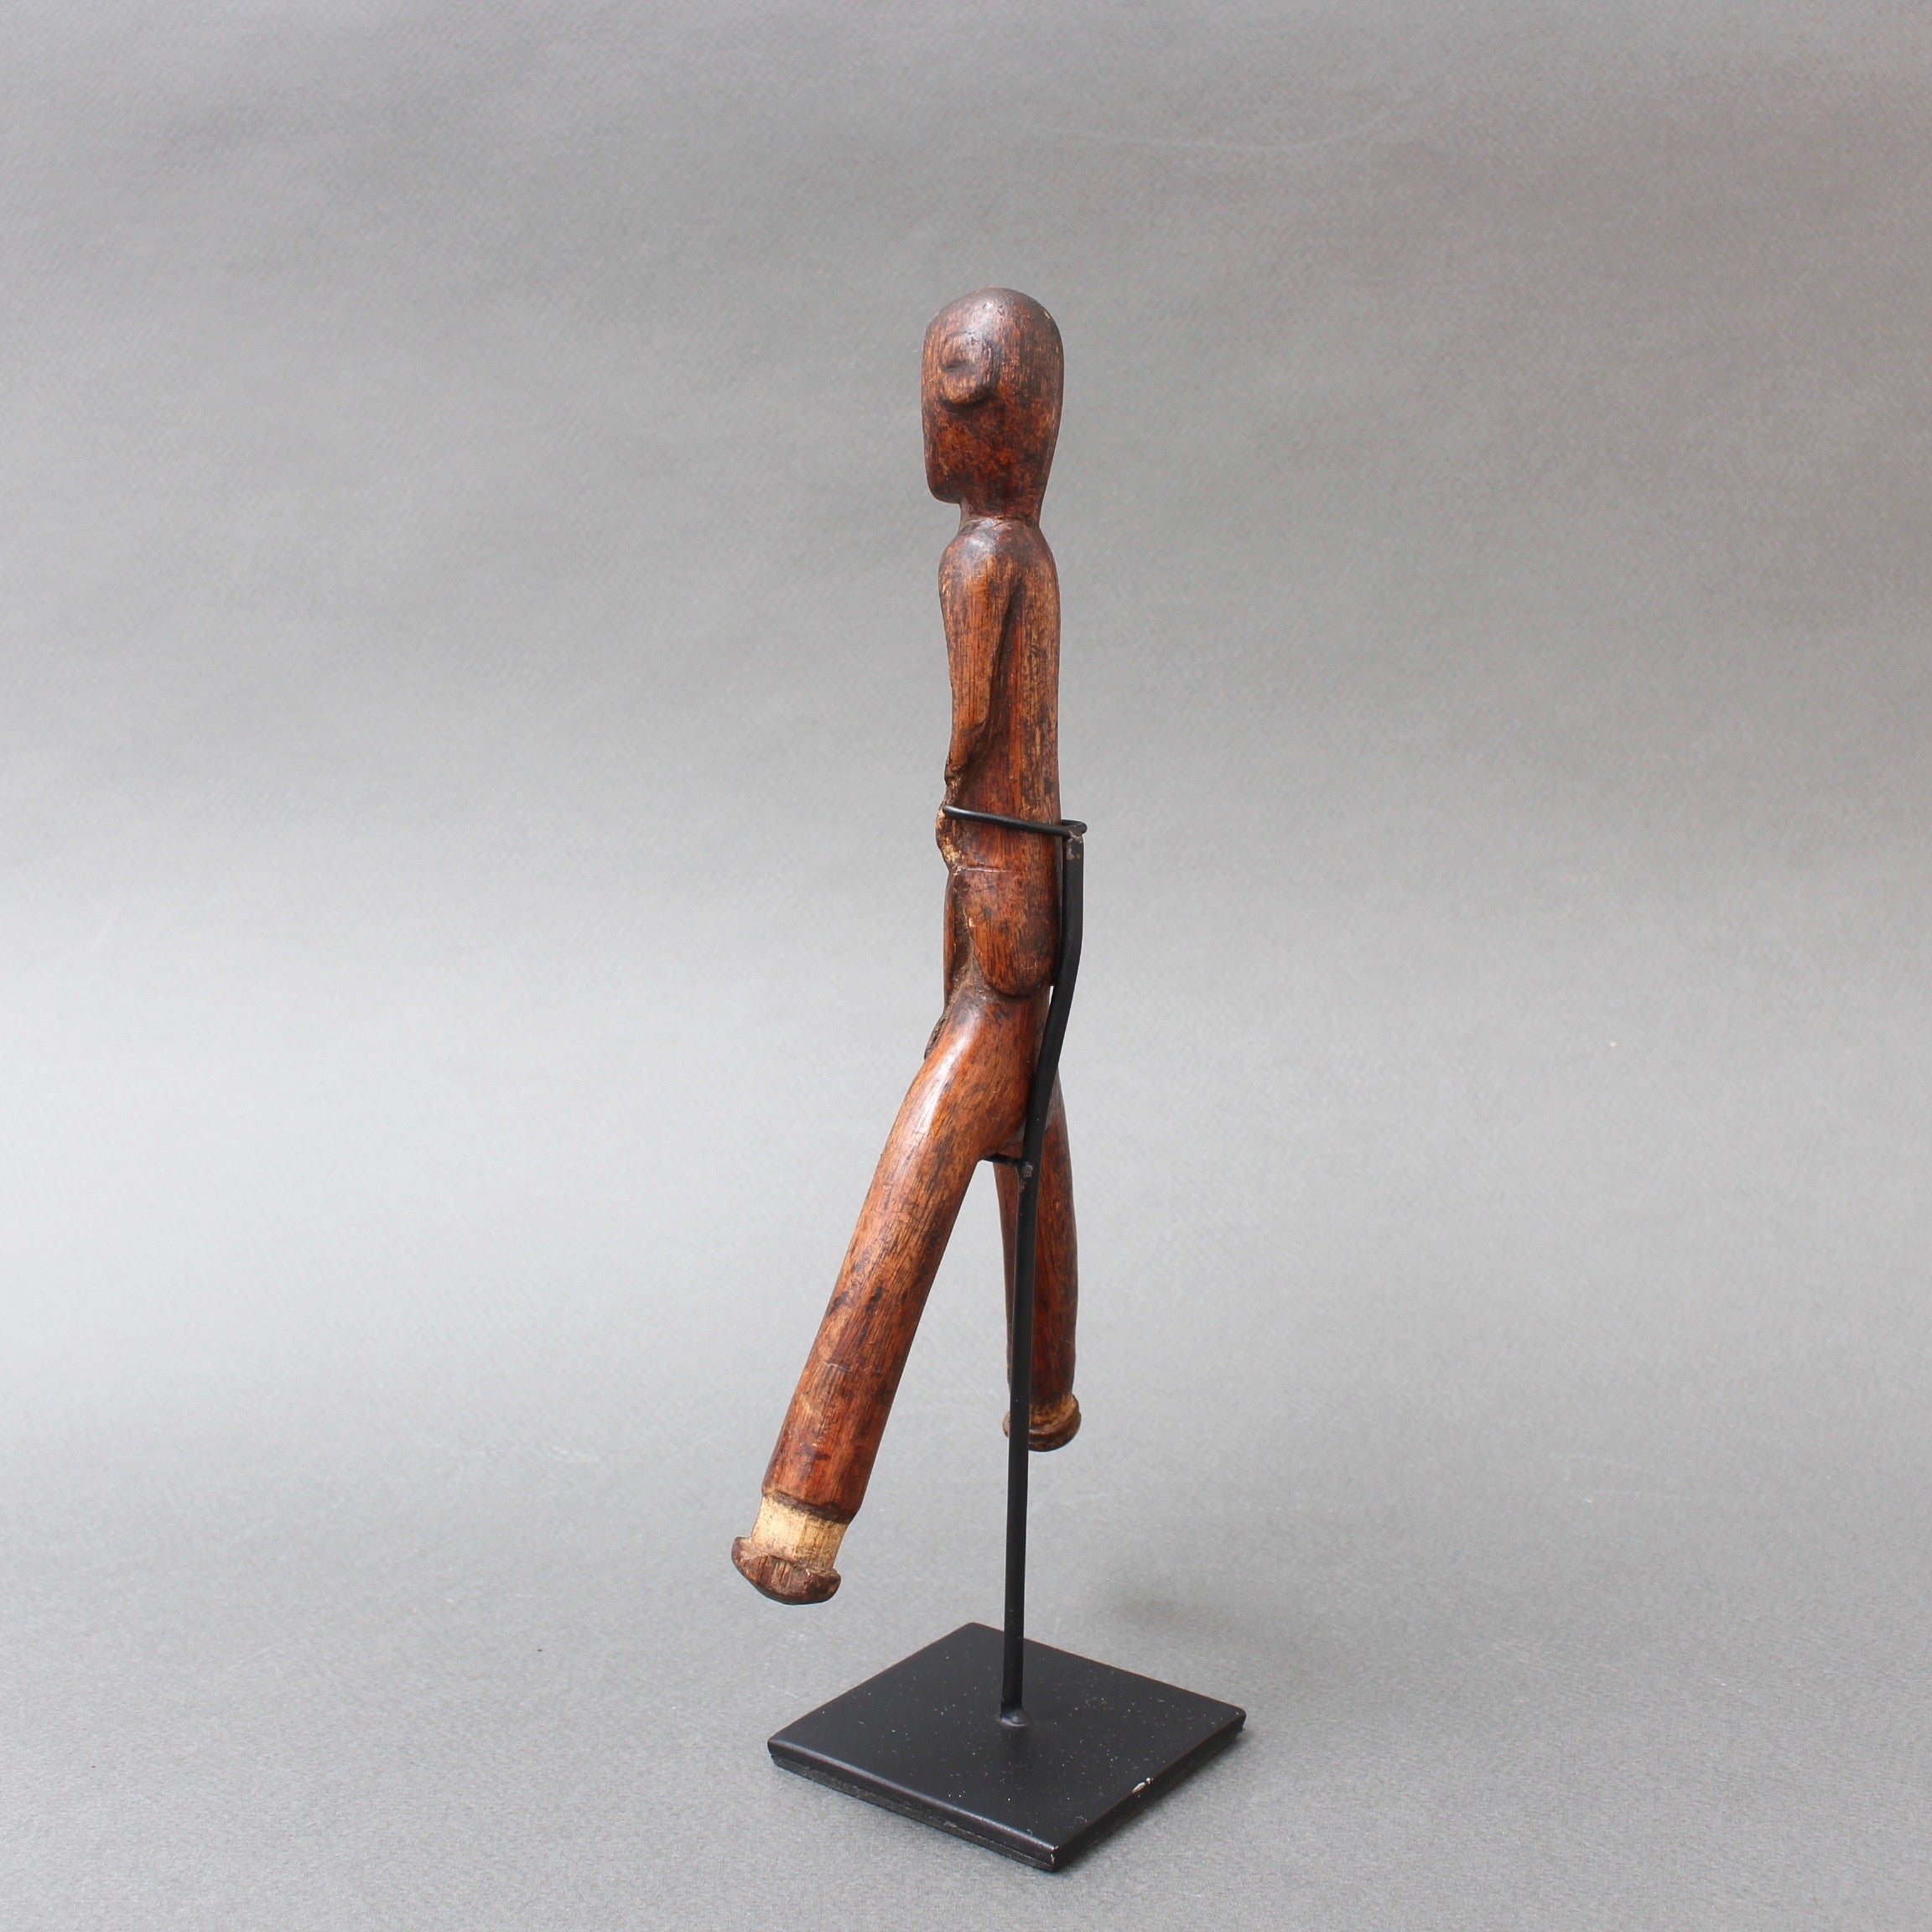 Carved Wooden Slingshot Figure from Timor Island, Indonesia (circa 1970s)